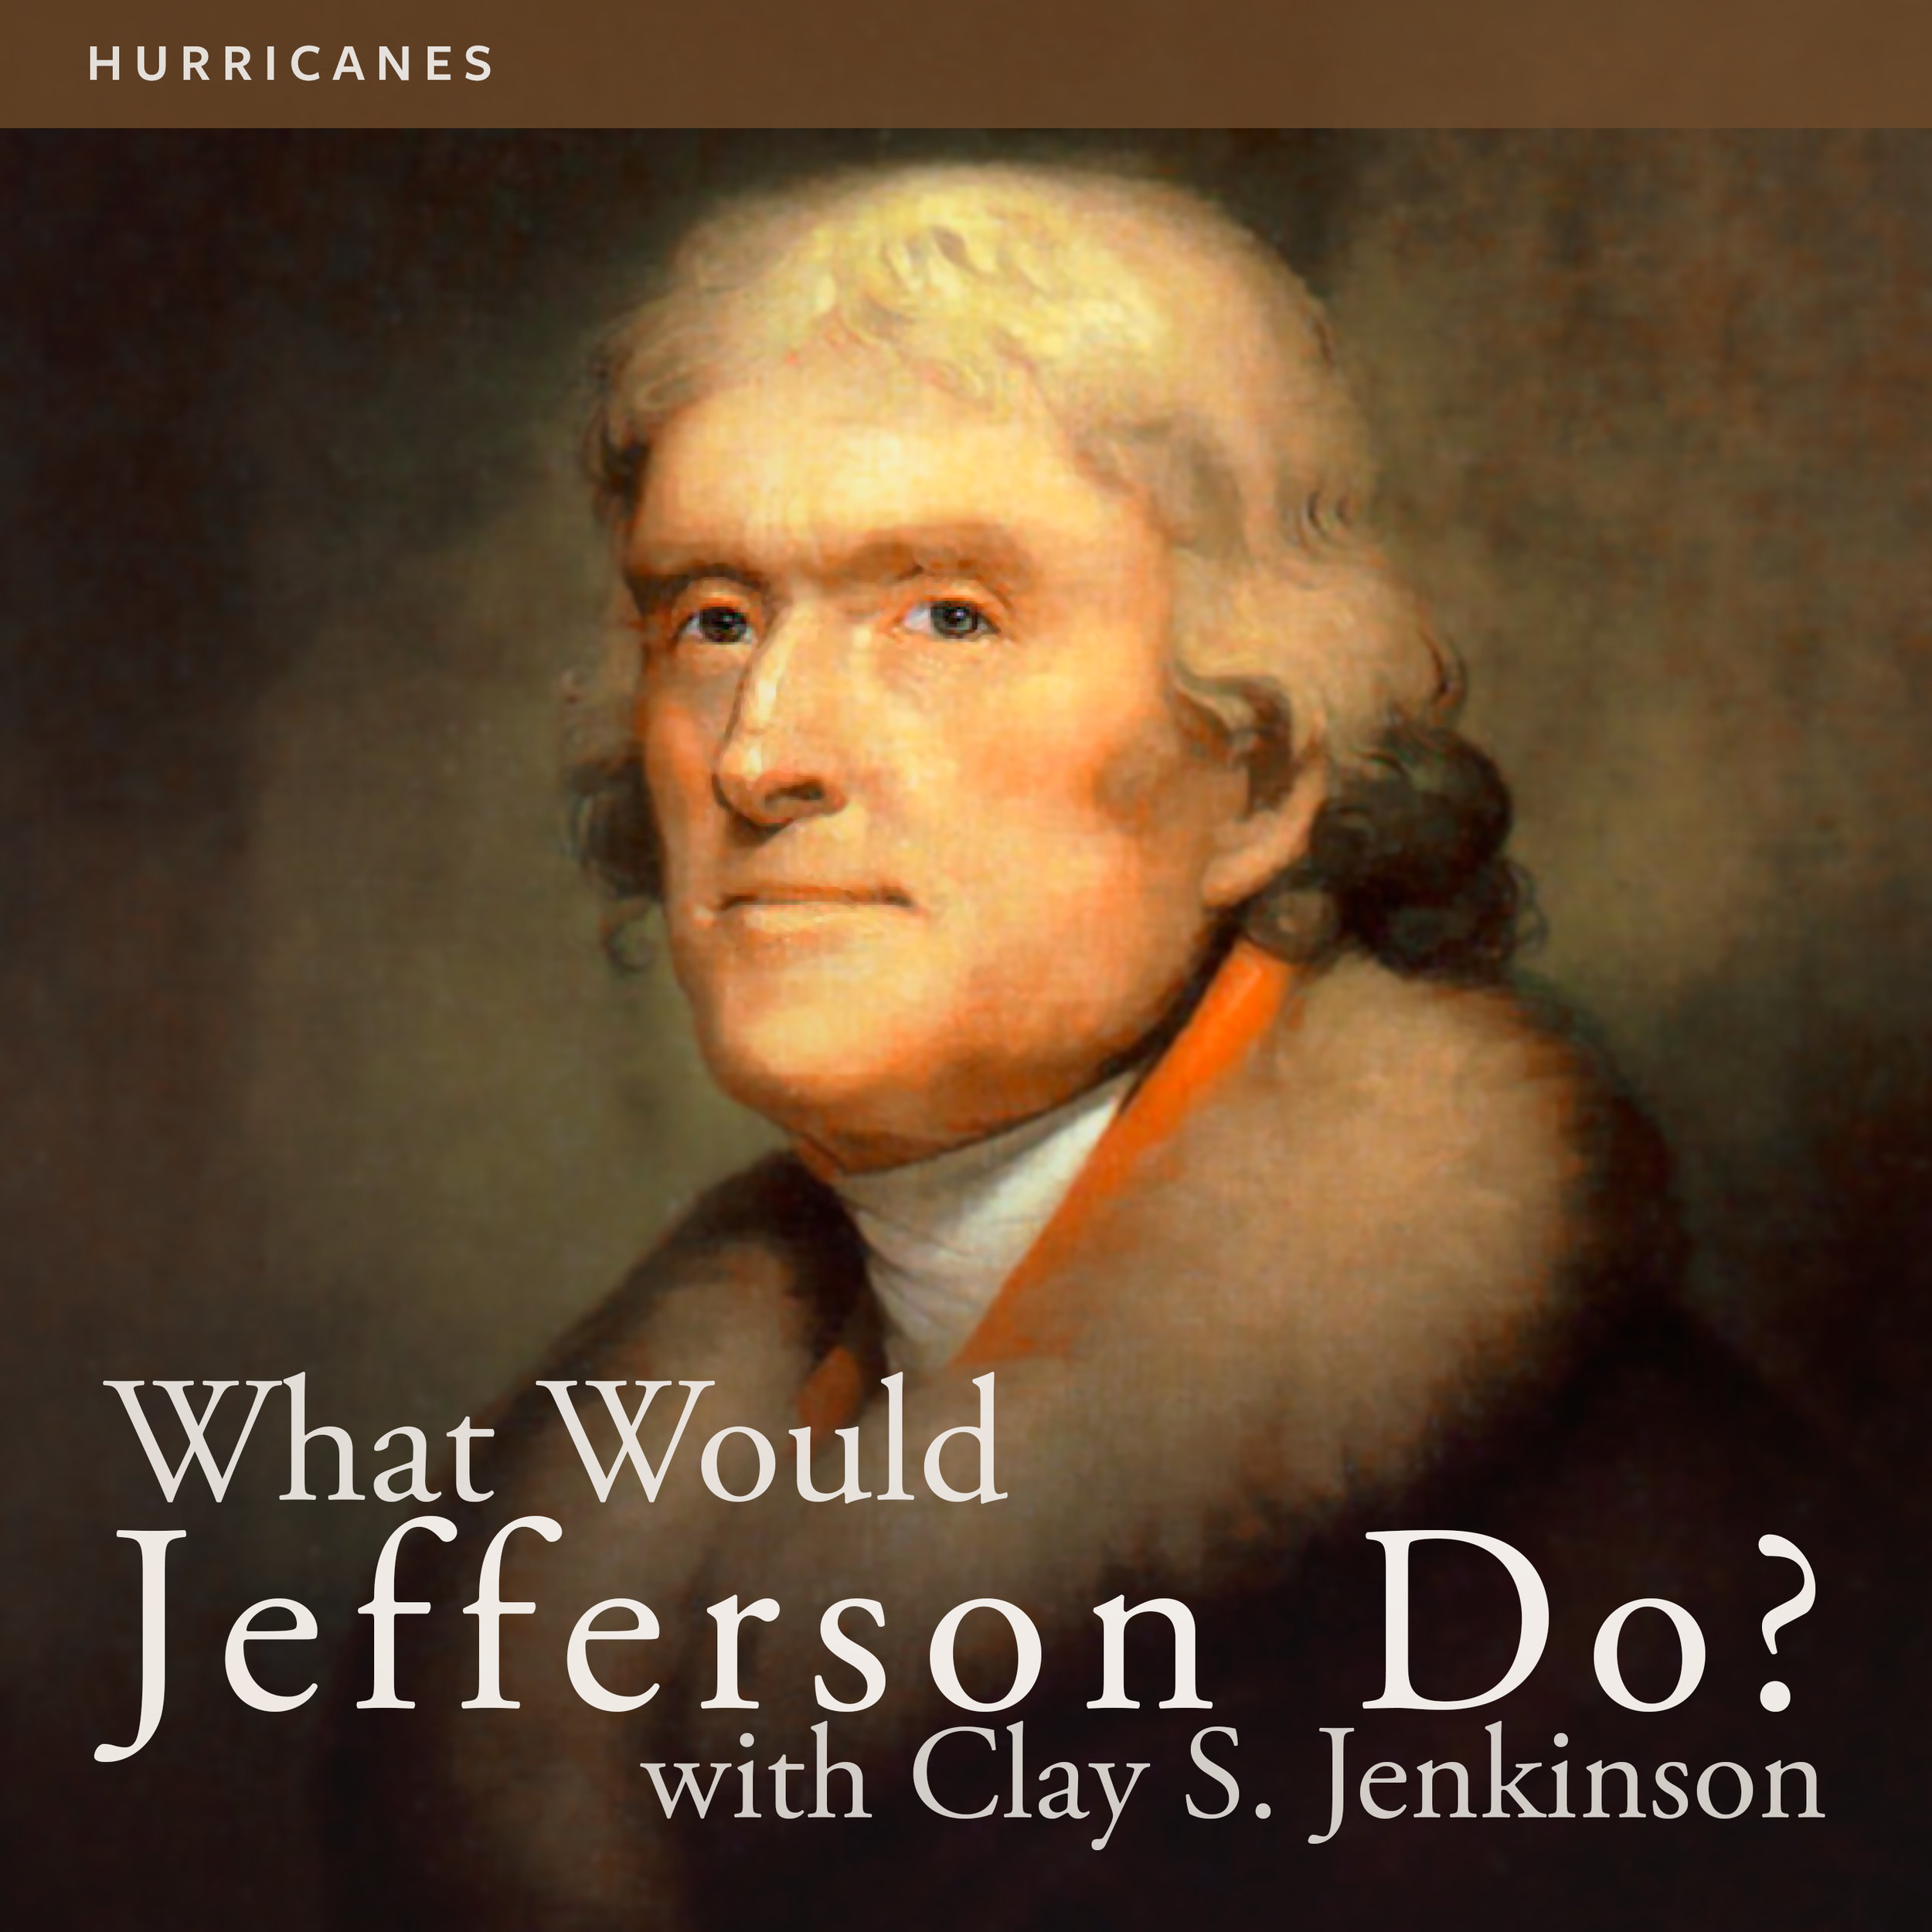 What Would Jefferson Do? Hurricanes